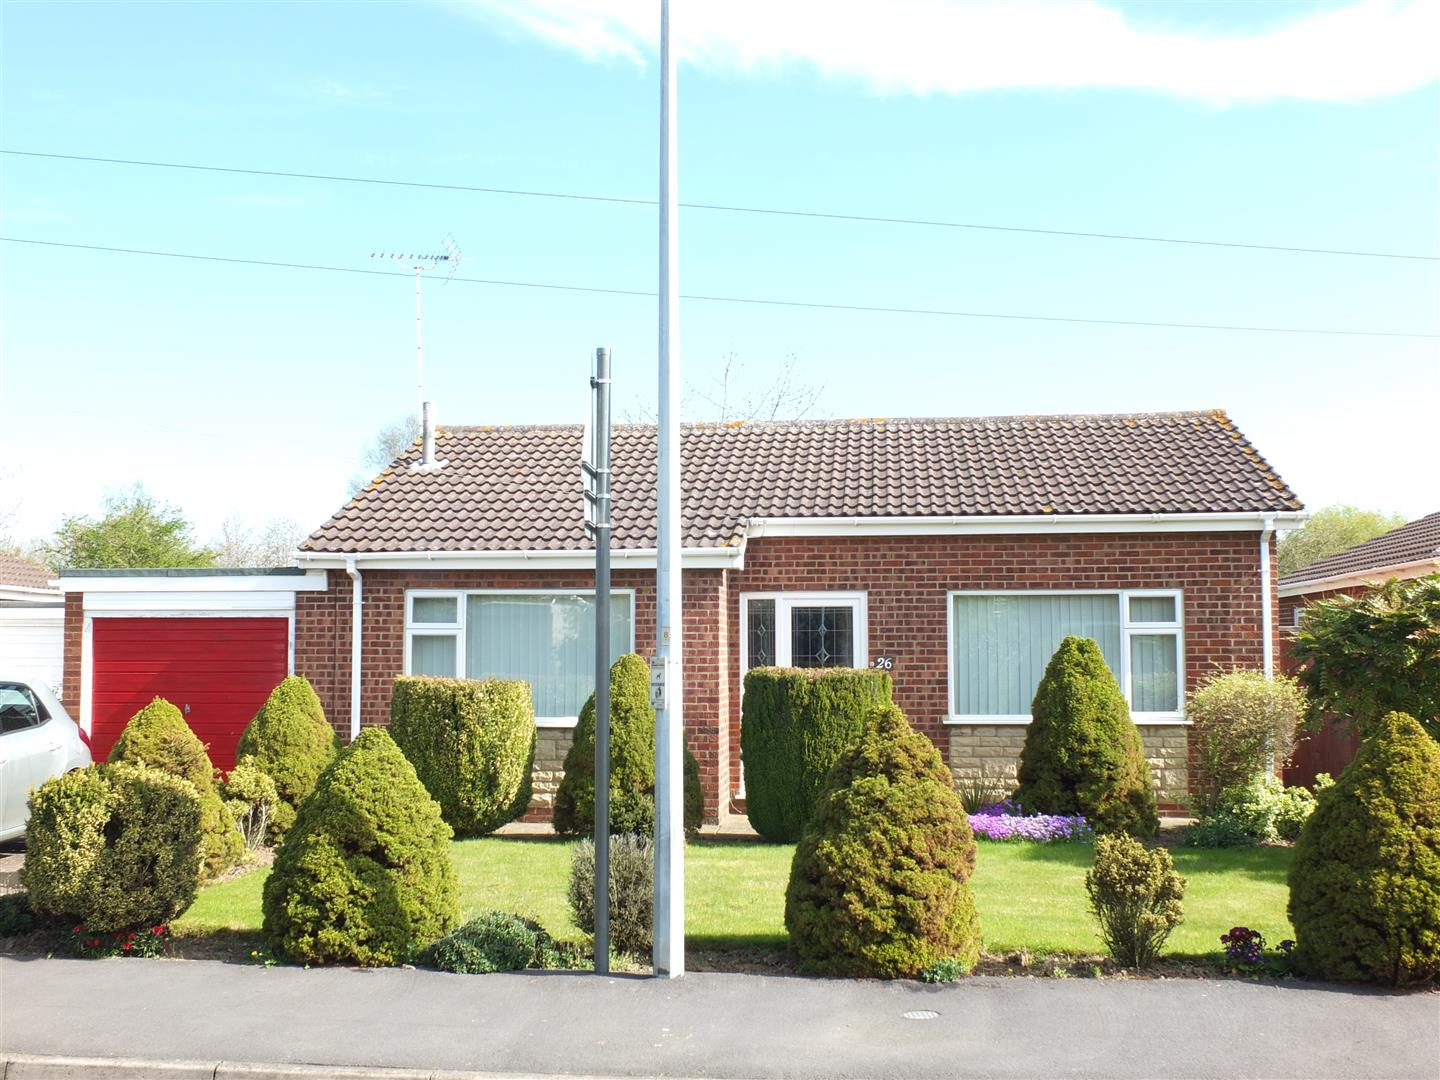 2 bed detached bungalow to rent in Long Sutton Spalding, PE12 9EP 0